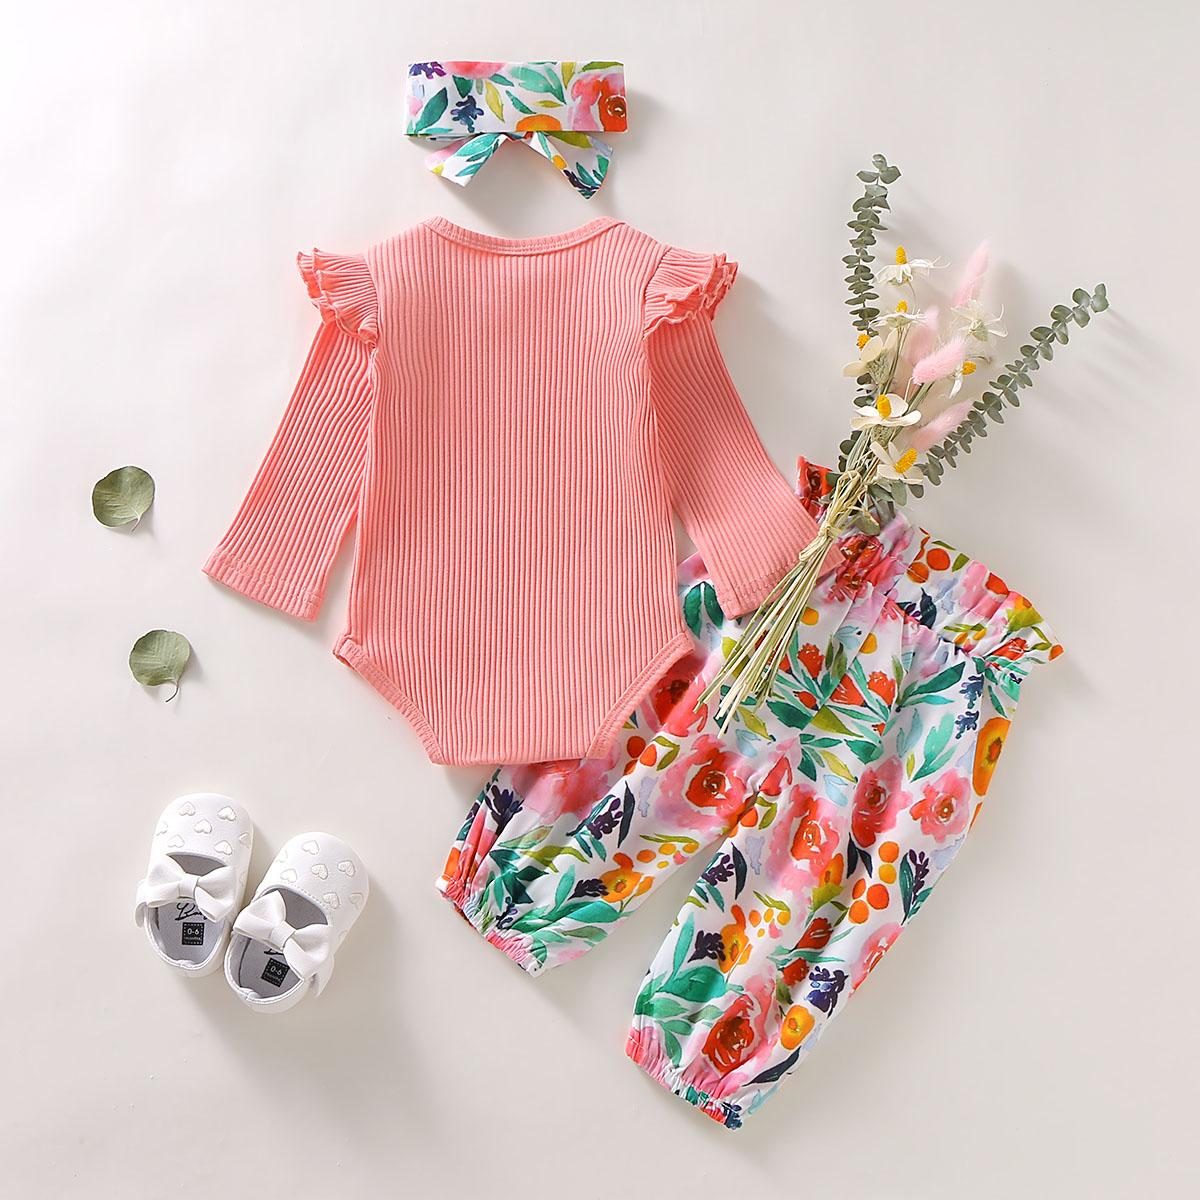 Pudcoco Autumn Newborn Baby Girl Clothes Solid Color Knitting Cotton Romper Tops Flower Print Long Pants Headband 3Pcs Outfits